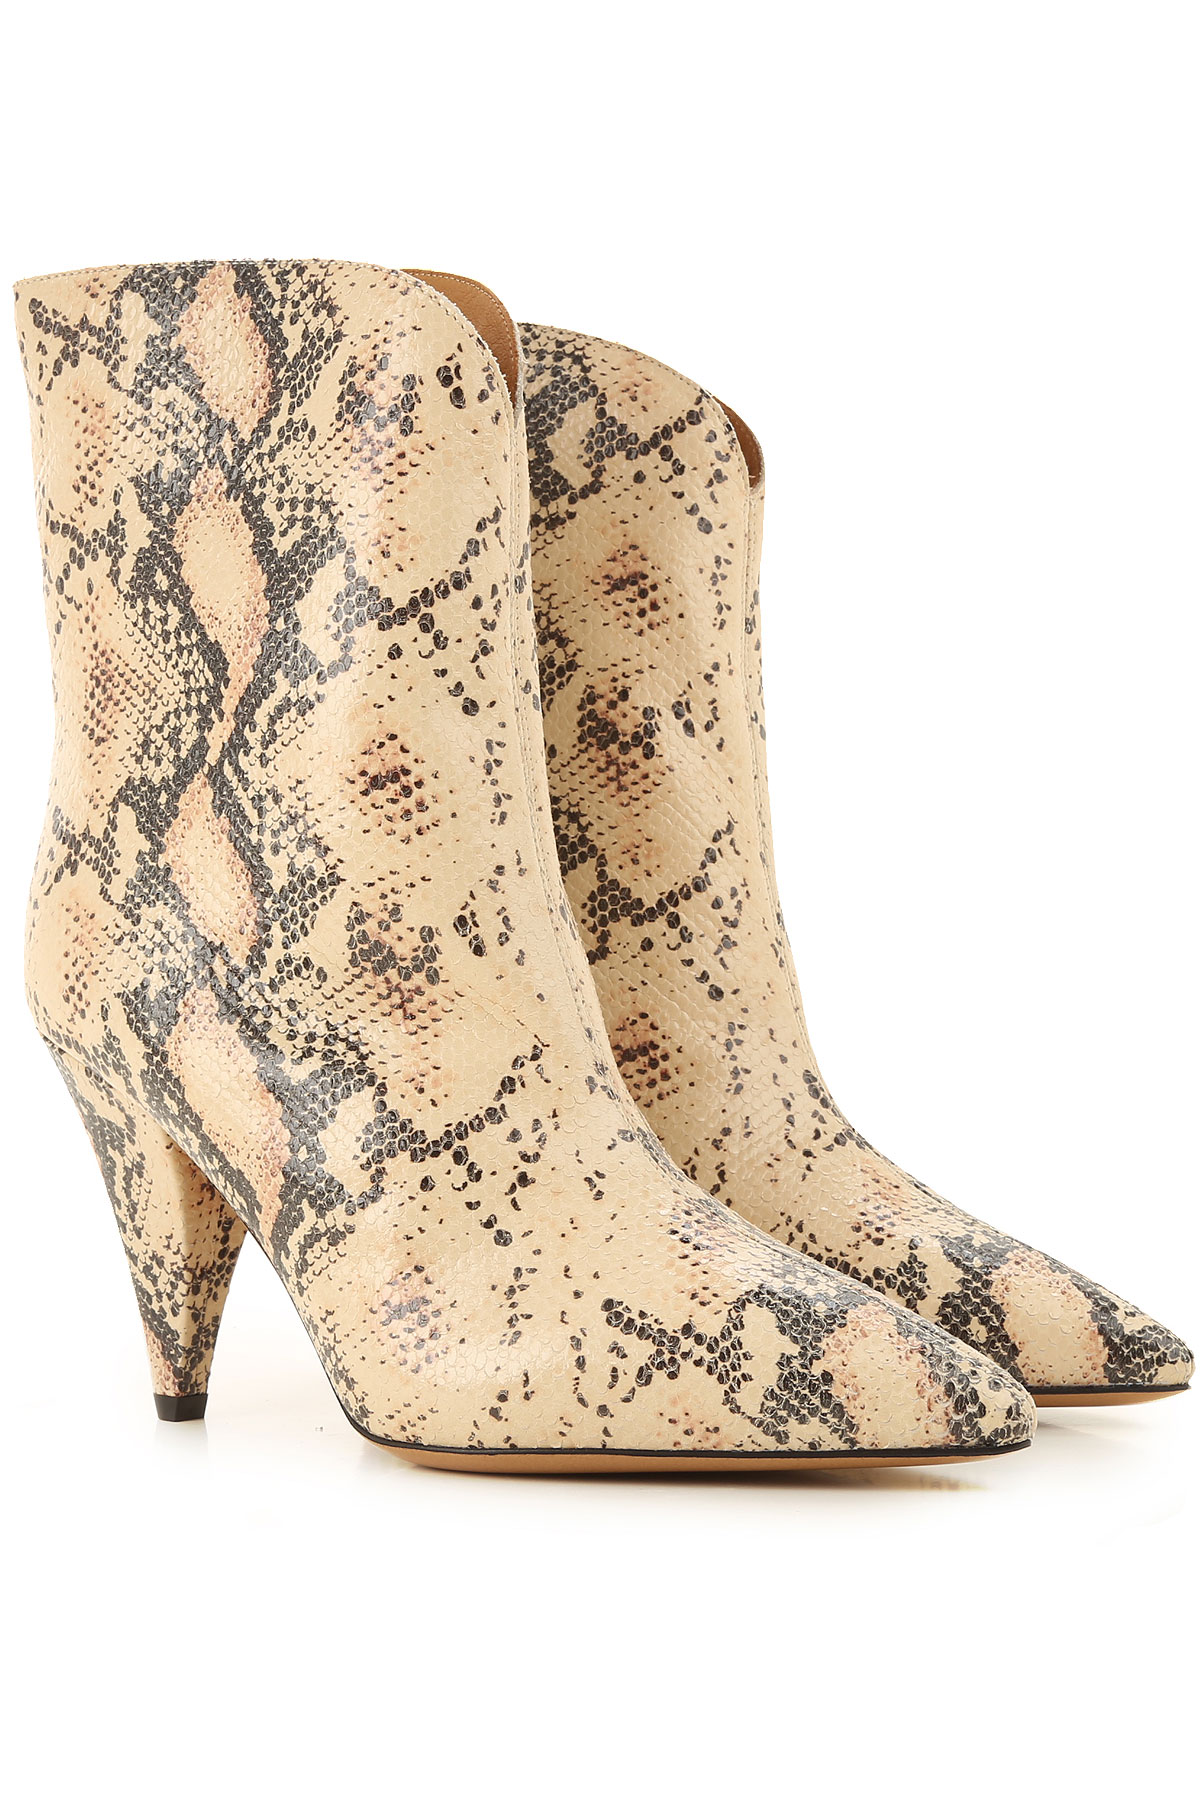 Elena Iachi Boots for Women, Booties On Sale, Natural, Leather, 2019, 10 11 6 7 8 9